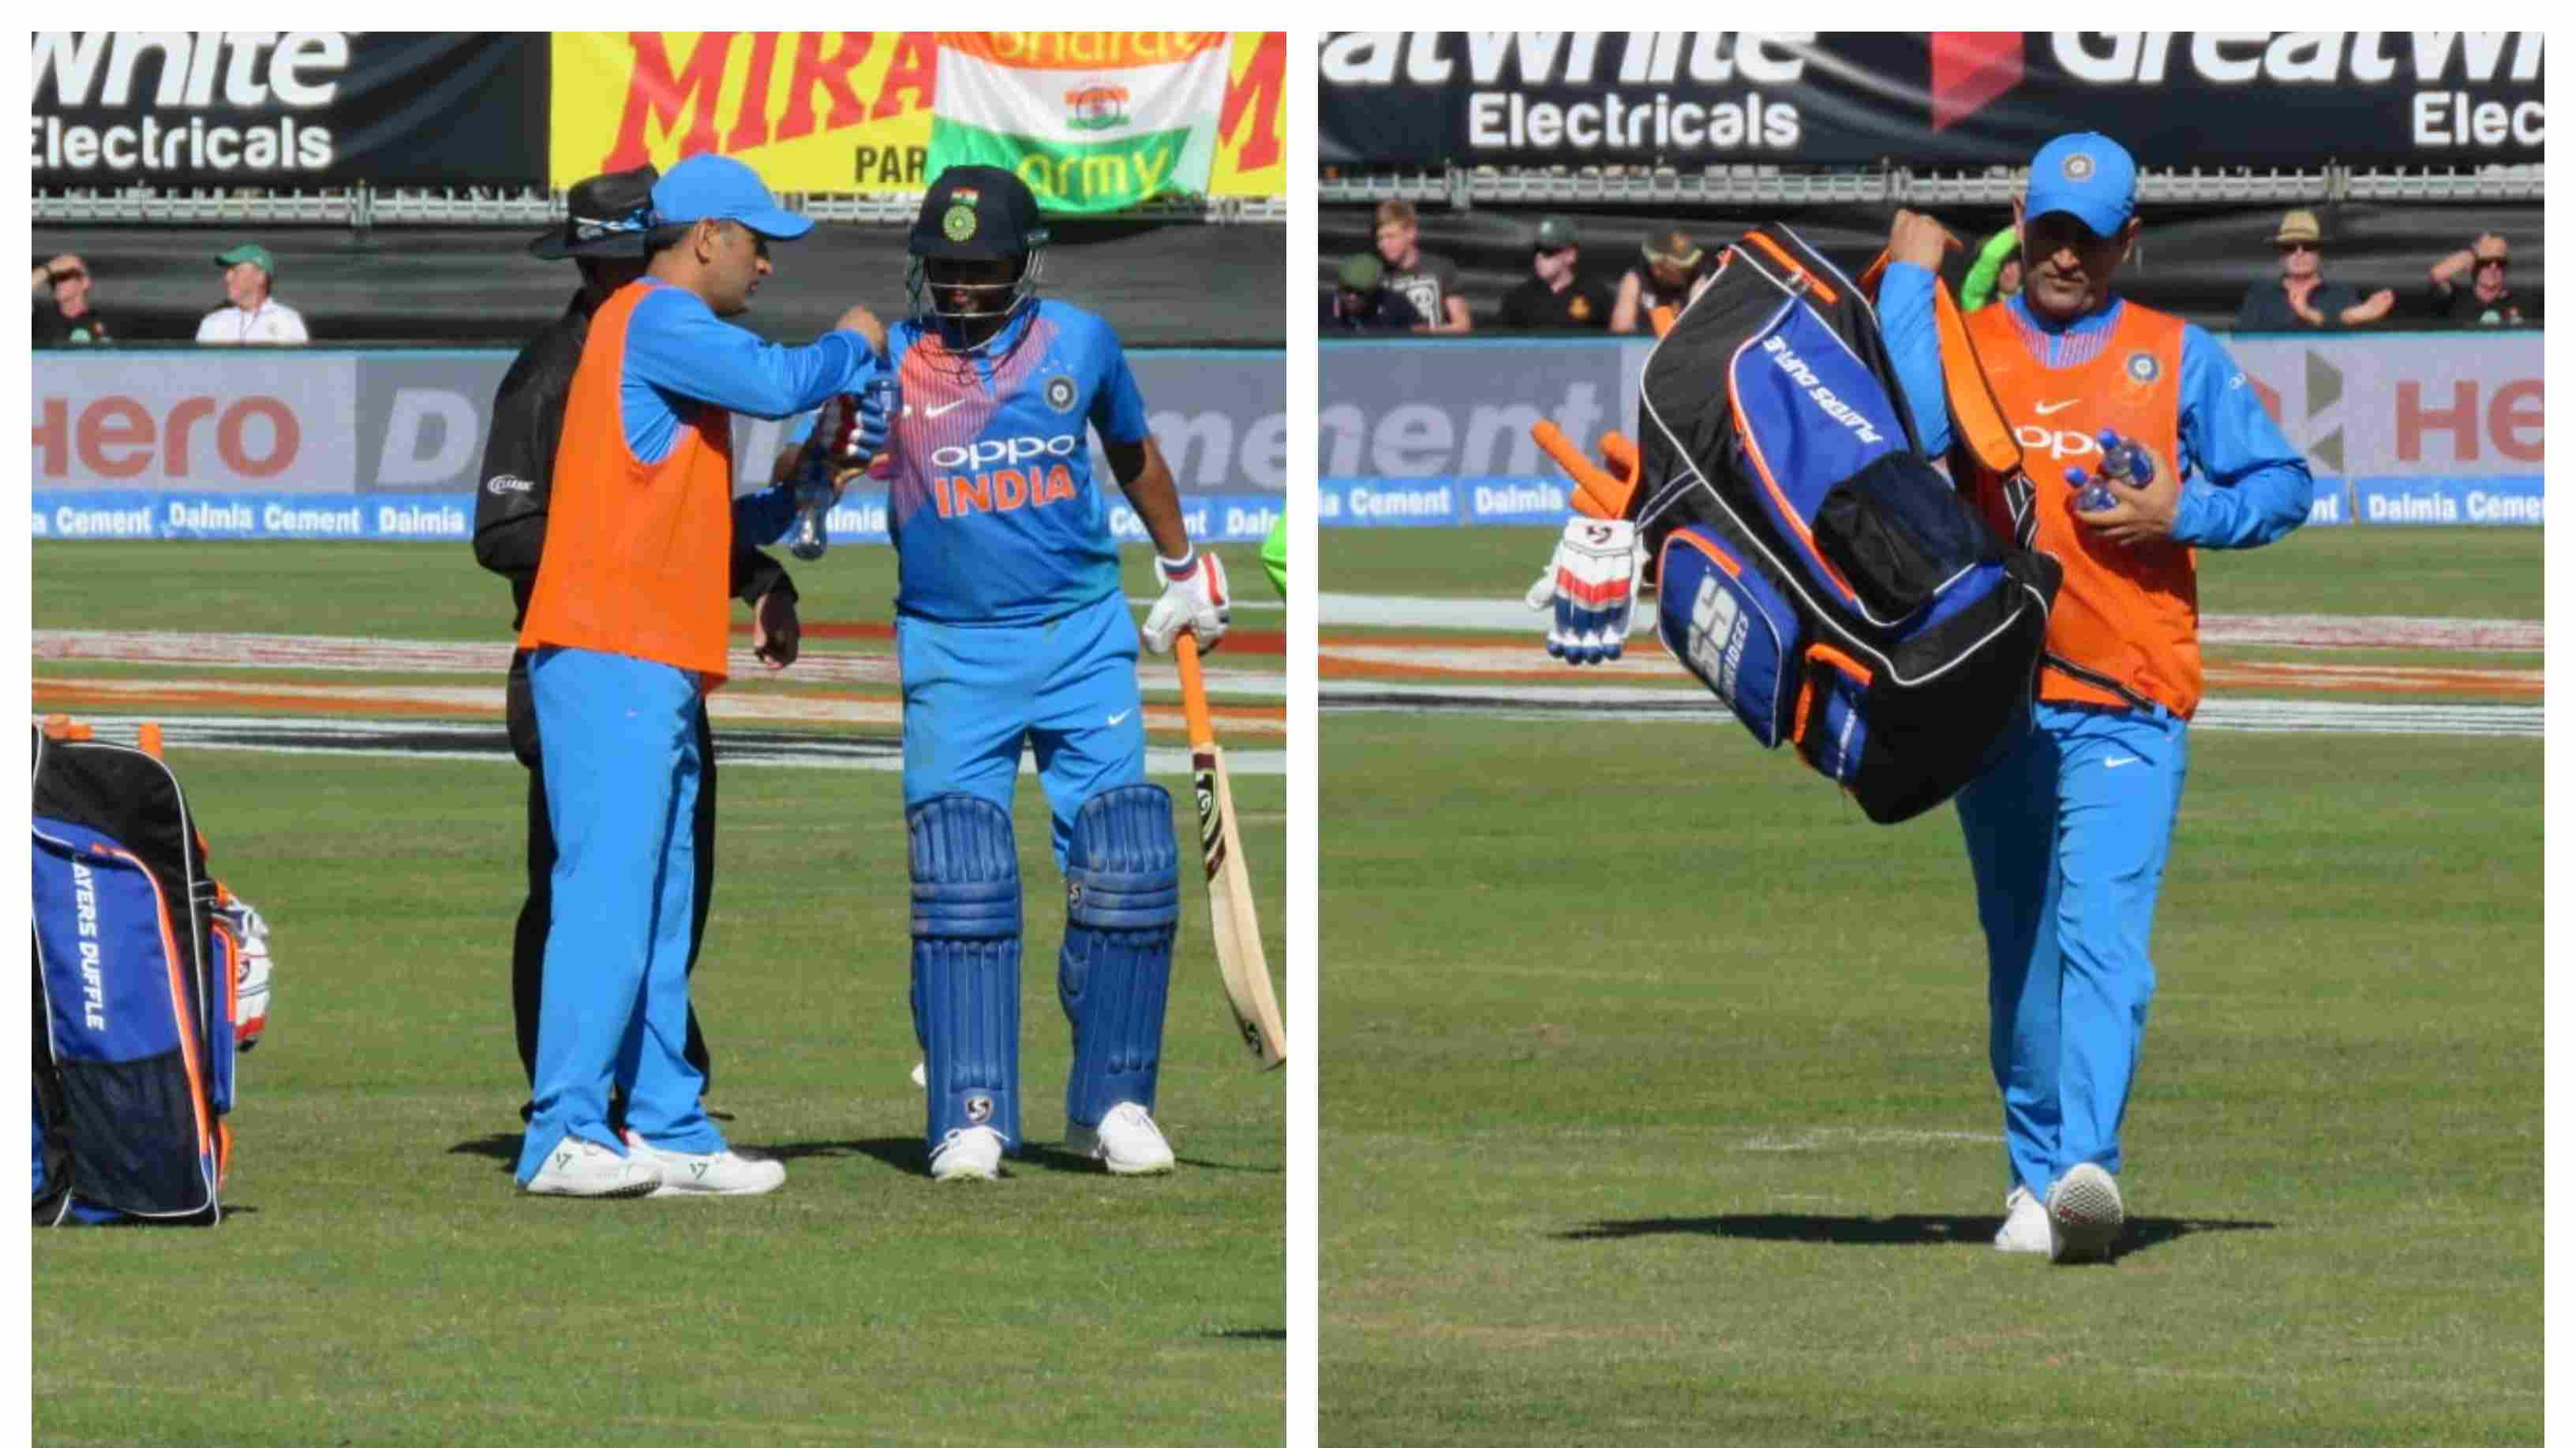 IRE v IND 2018: MS Dhoni shows his class once again, carries drinks for his teammates in the second T20I against Ireland